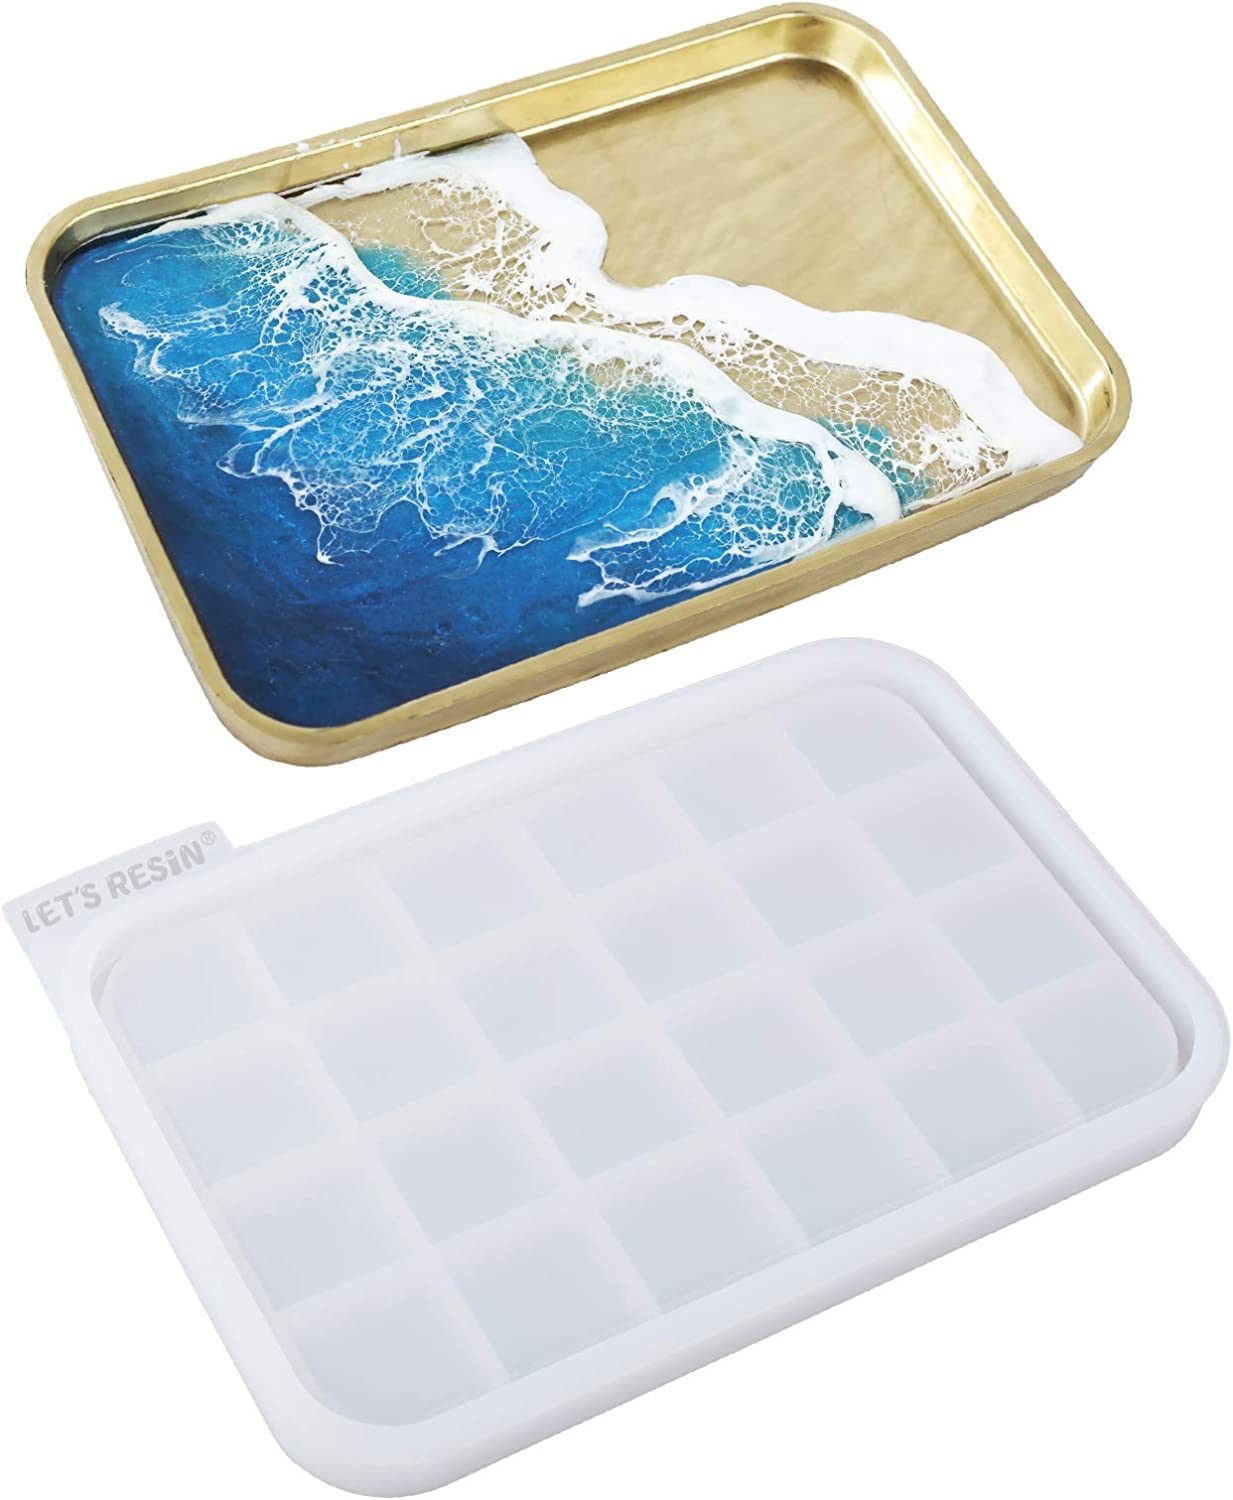 Maple Leaf Tray Resin Mold Rolling Tray Resin Mold,Sturdy Silicone Tray Molds for DIY Jewelry Casting Trinkets Storage,Rolling Tray Molds for Epoxy Resin,DIY Jewelry Holder,Home Decoration